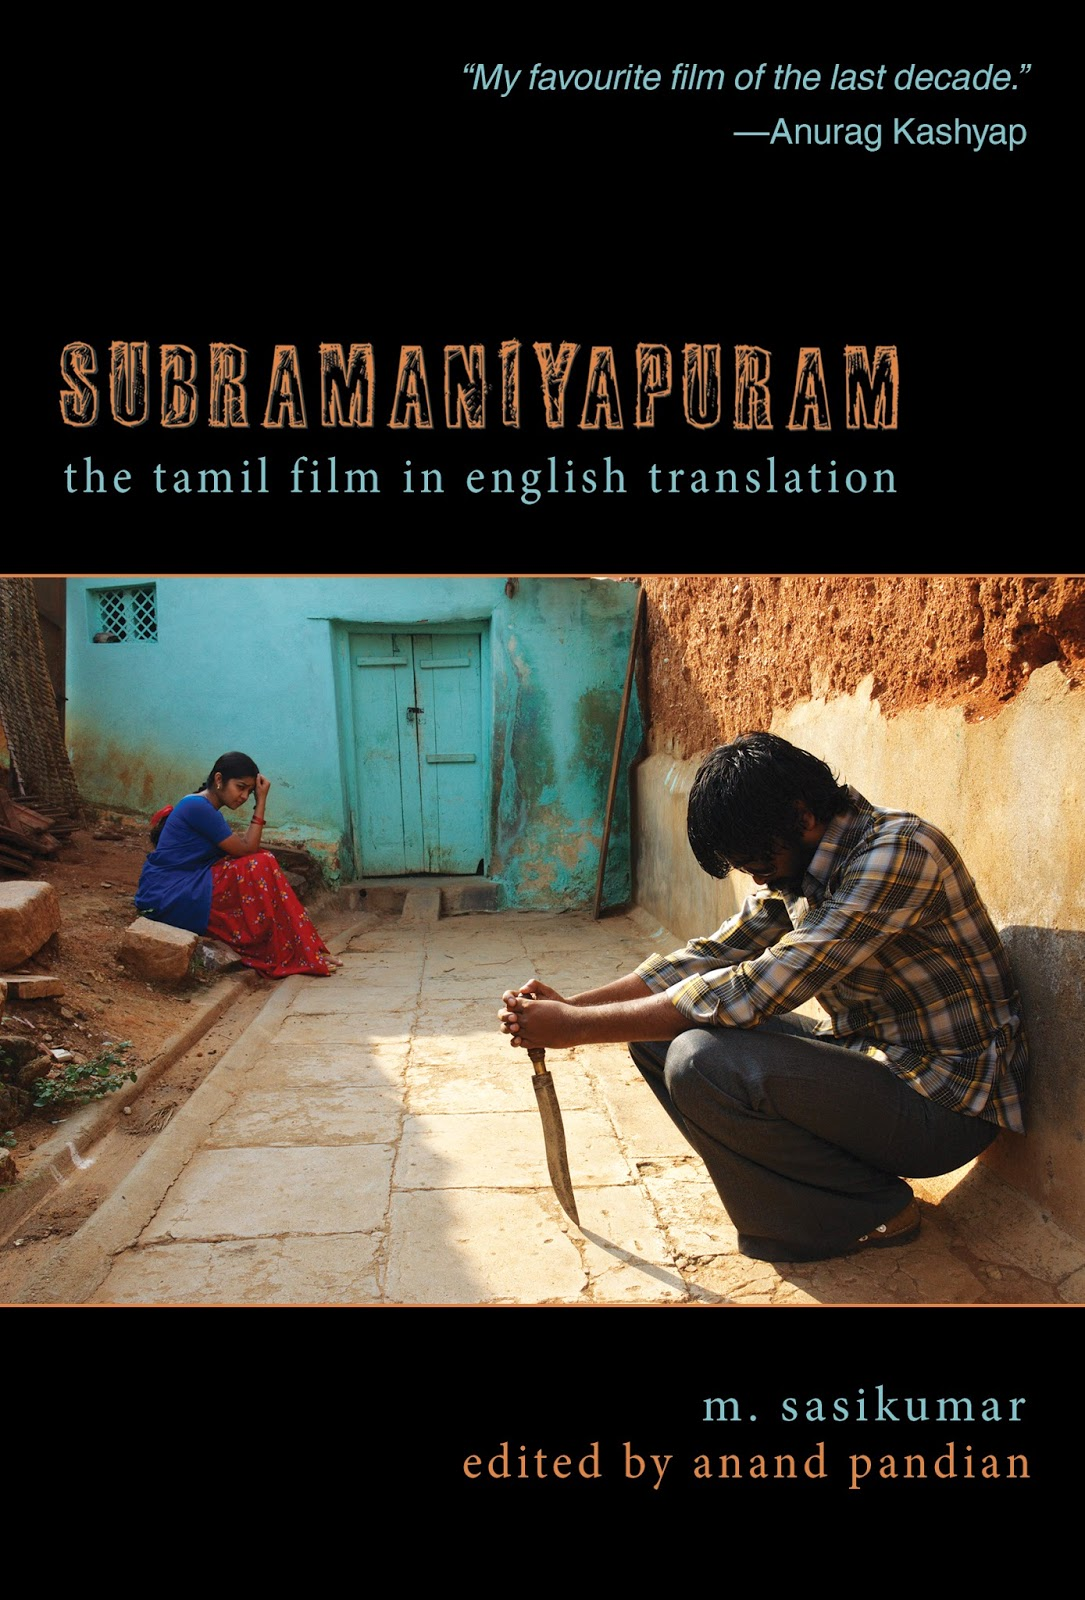 http://www.spdbooks.org/Producte/9789383260843/subramaniyapuram-the-tamil-film-in-english-translation.aspx